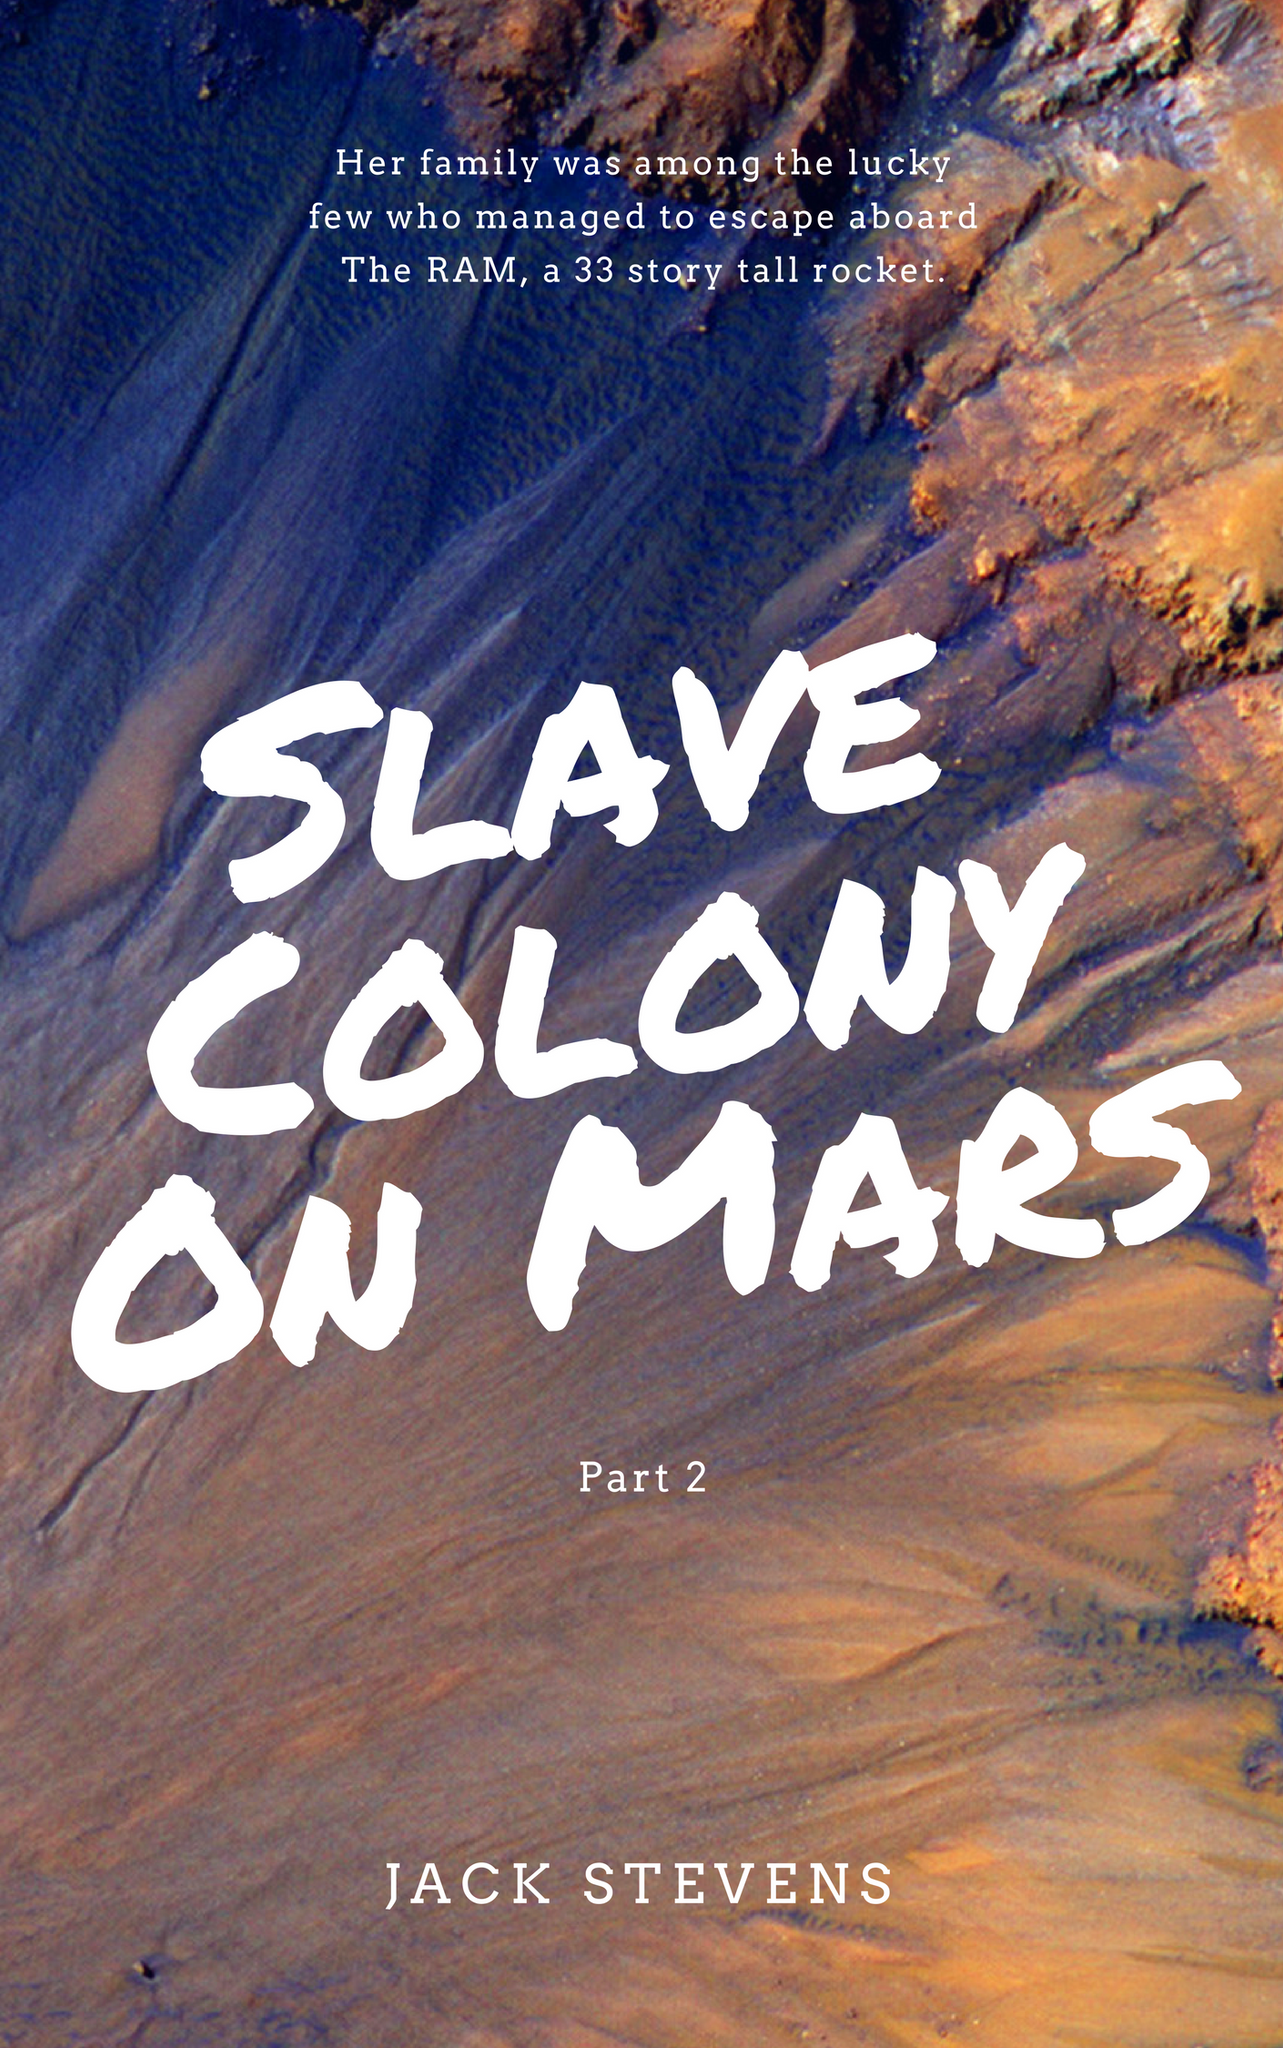 SLAVE COLONY ON MARS: PART 2 by Jack Stevens Audiobook